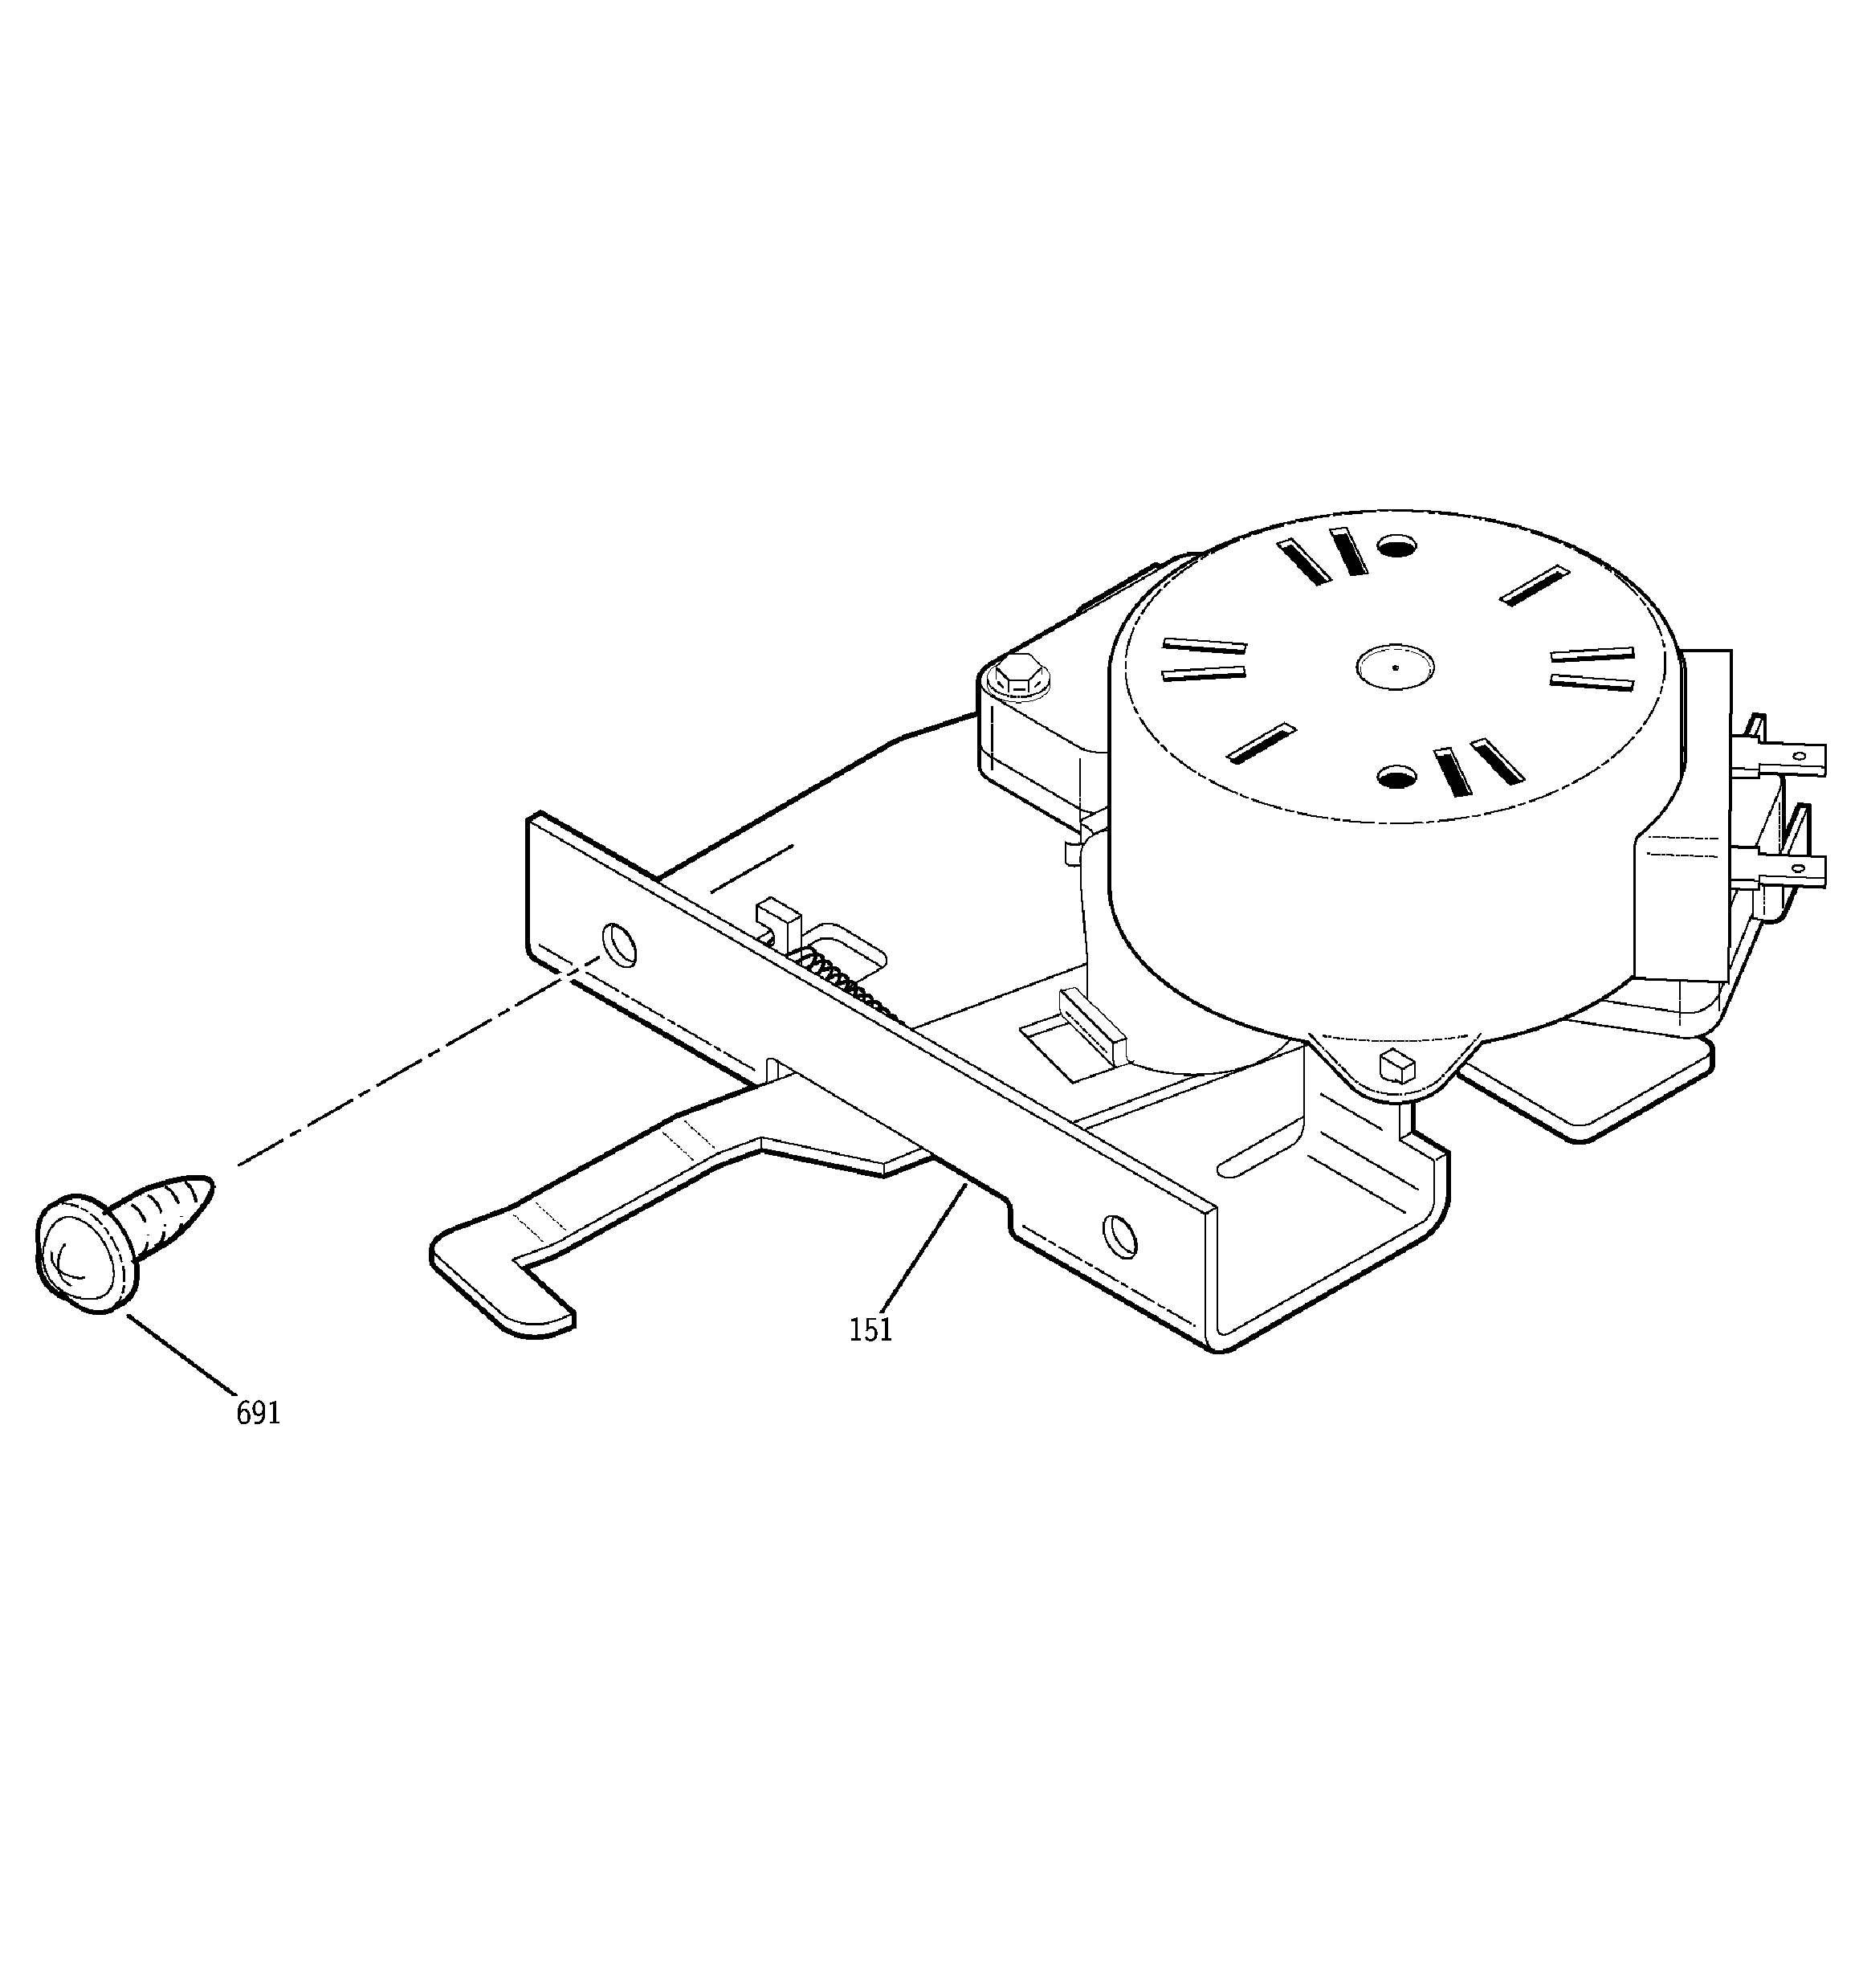 Jkp15 electric oven door lock parts diagram